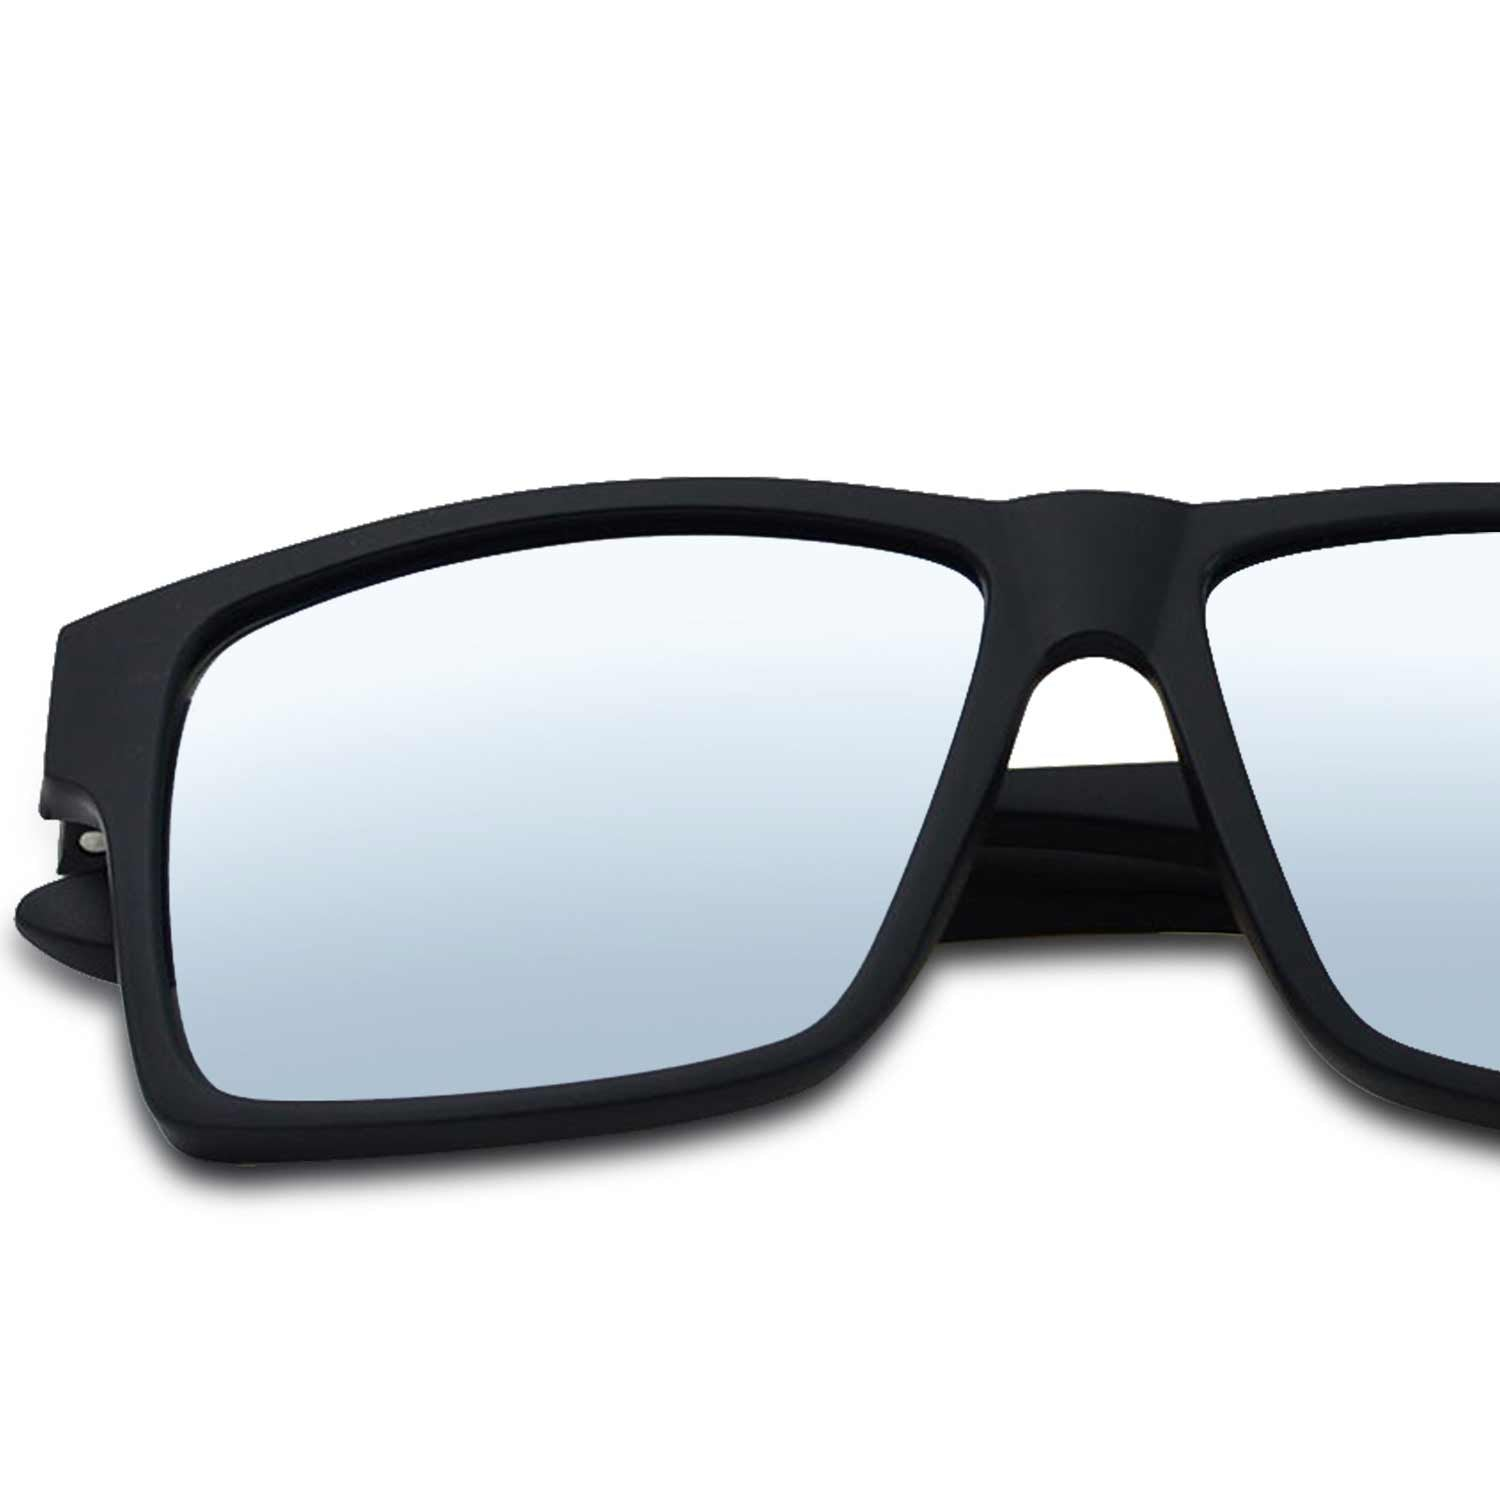 darkest black matte frame sunglass for men dark tinted smoke category4 lenses sunglasses with 2 two white stripes strips on side arm temple classic squared vacation beach male shades optical oar coating polarise polarized sunglasses with white stripes mirrored polarized sunglasses